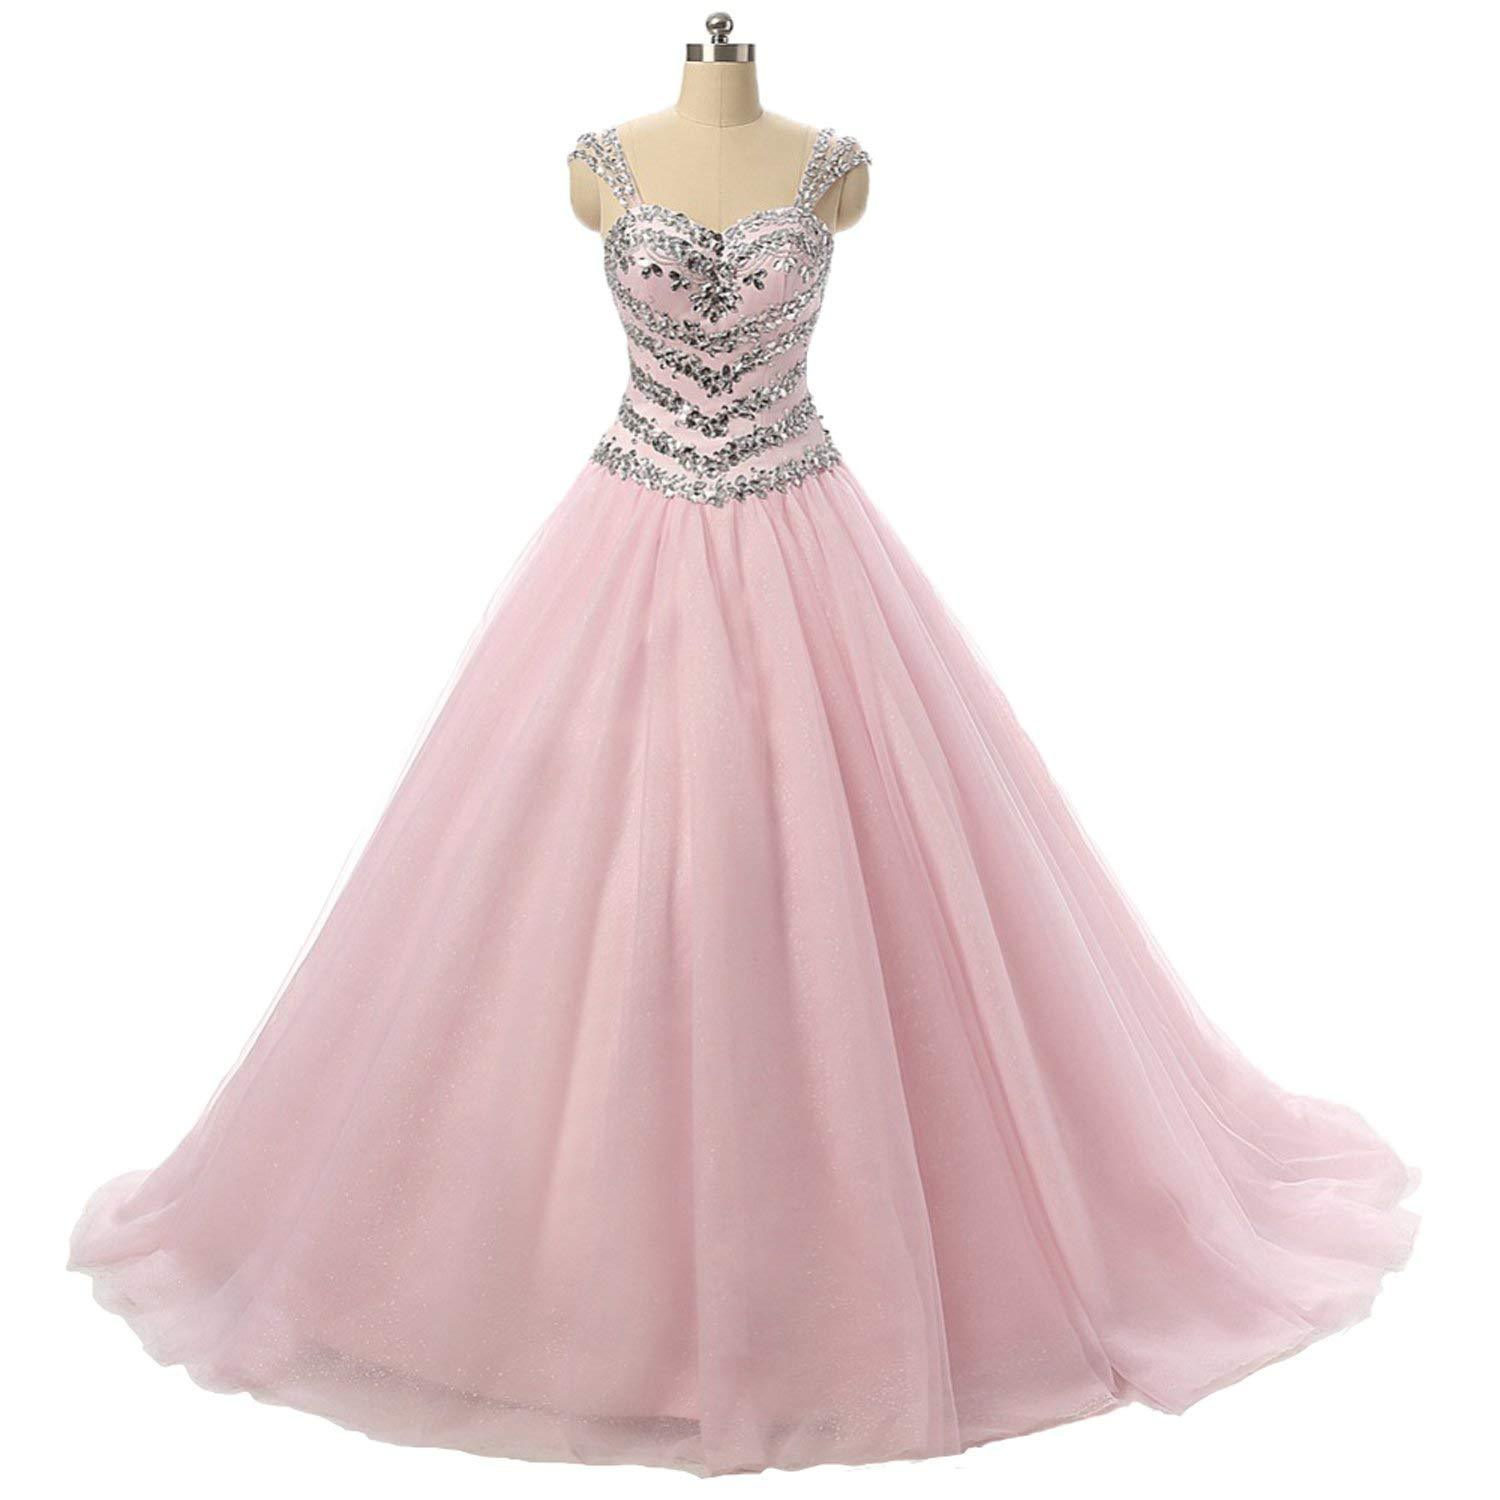 Primary image for Women's Sweetheart Ball Gown Prom Dress Beading Sequins Tulle Formal Party Dress